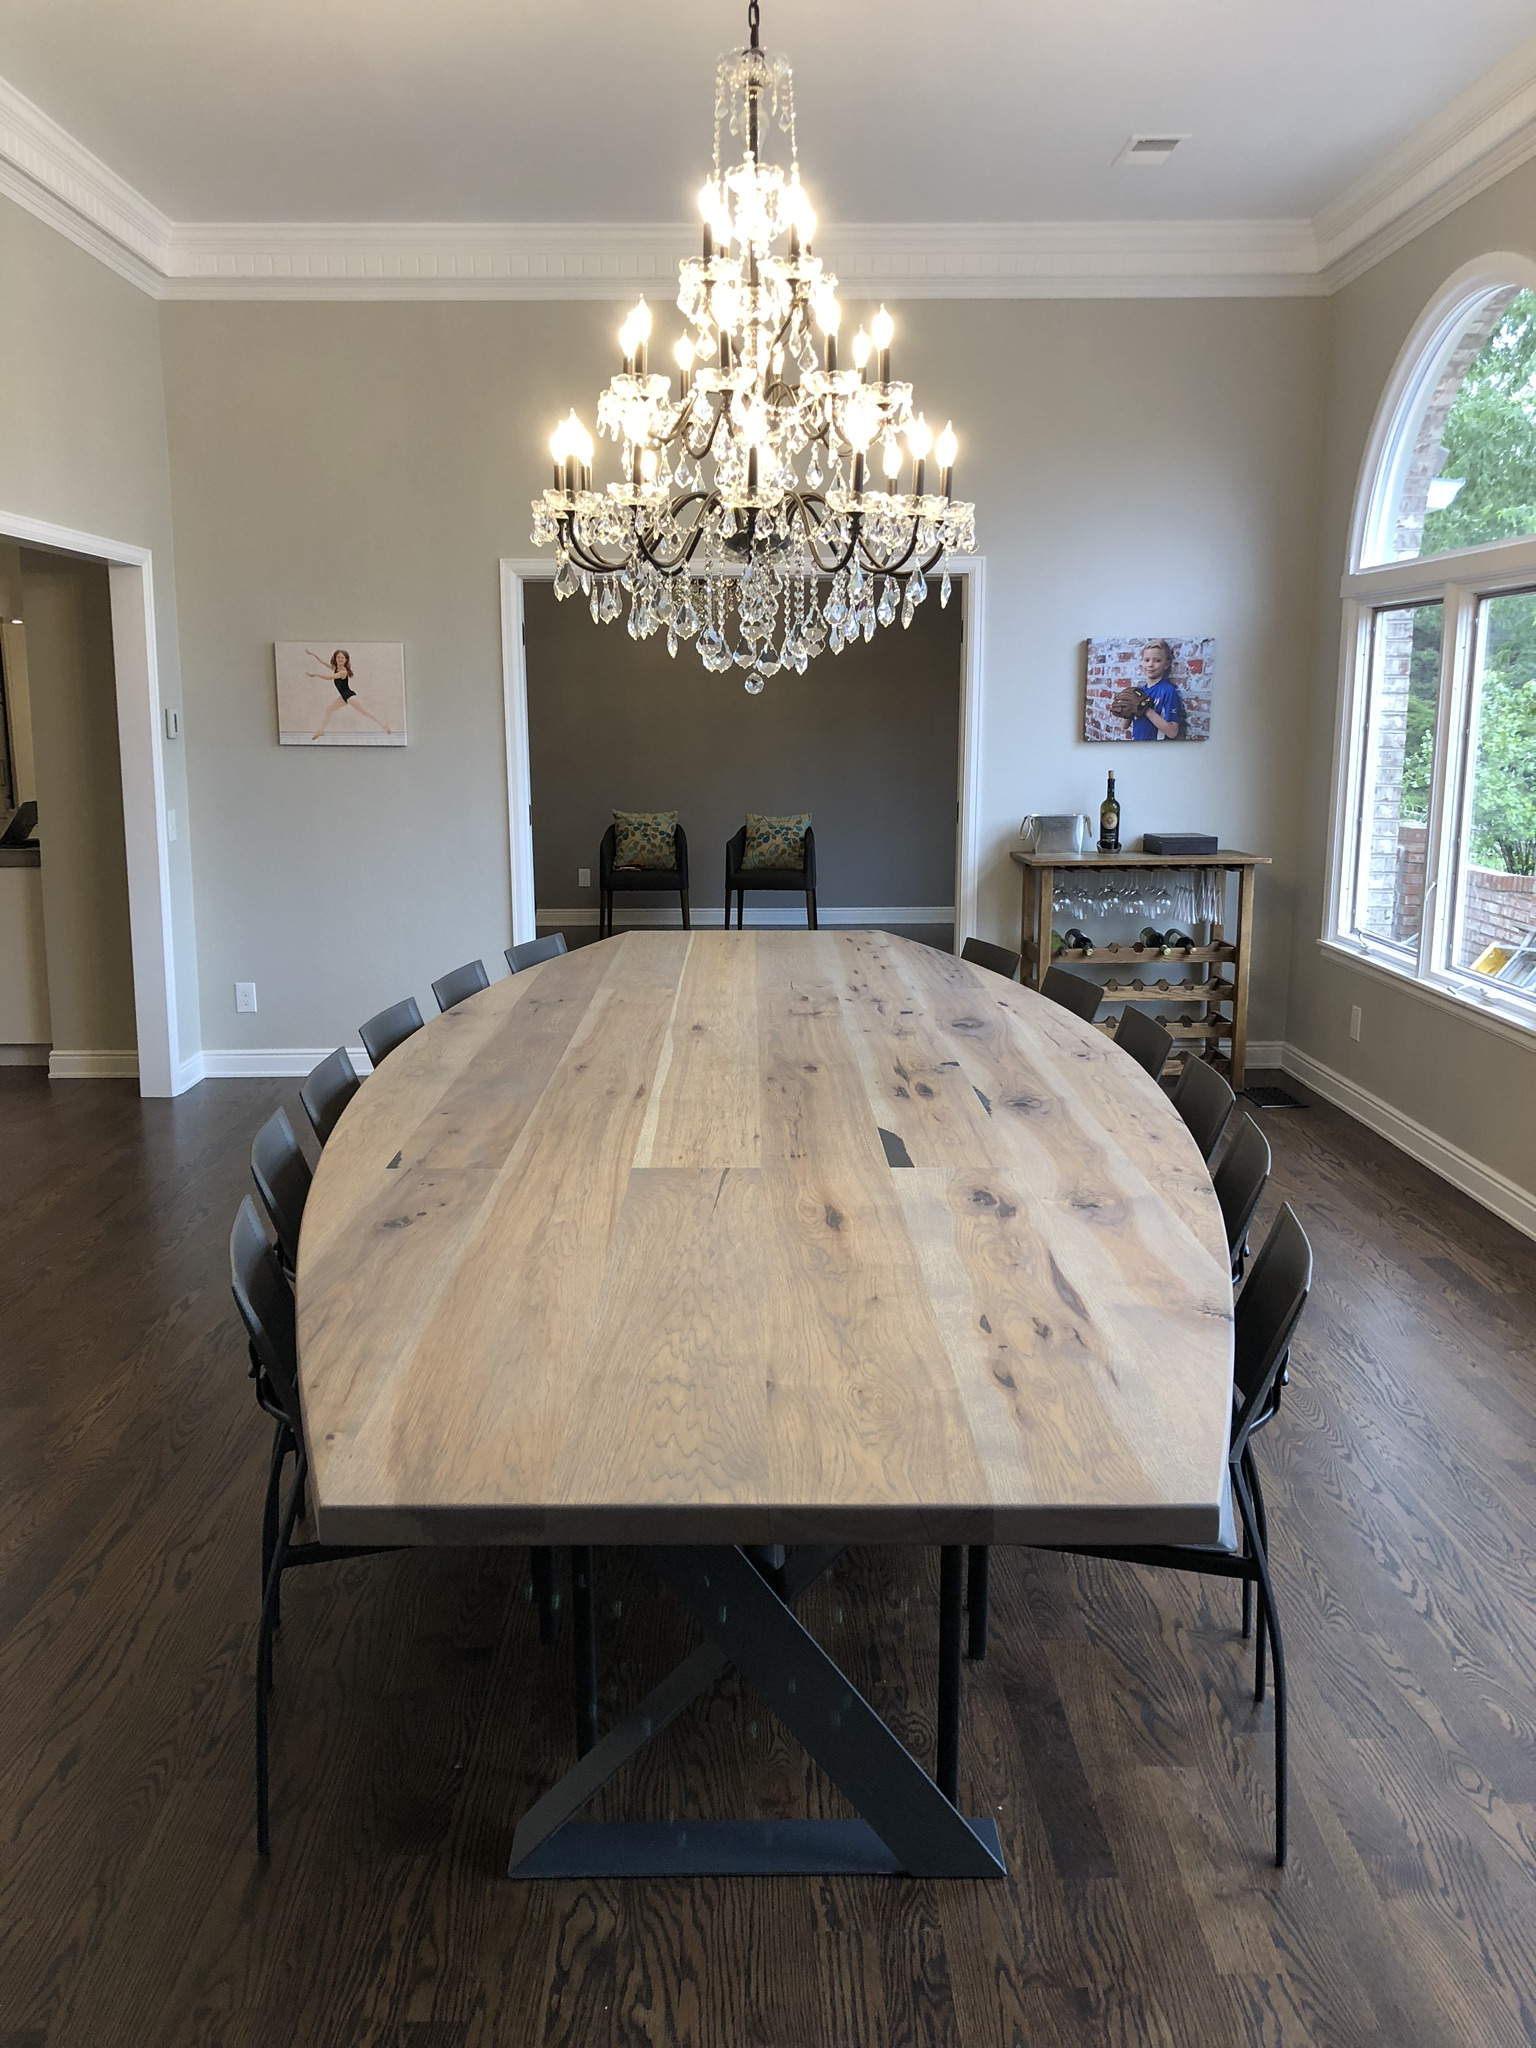 House of Alpine Rustic Hickory Conference Table.jpg